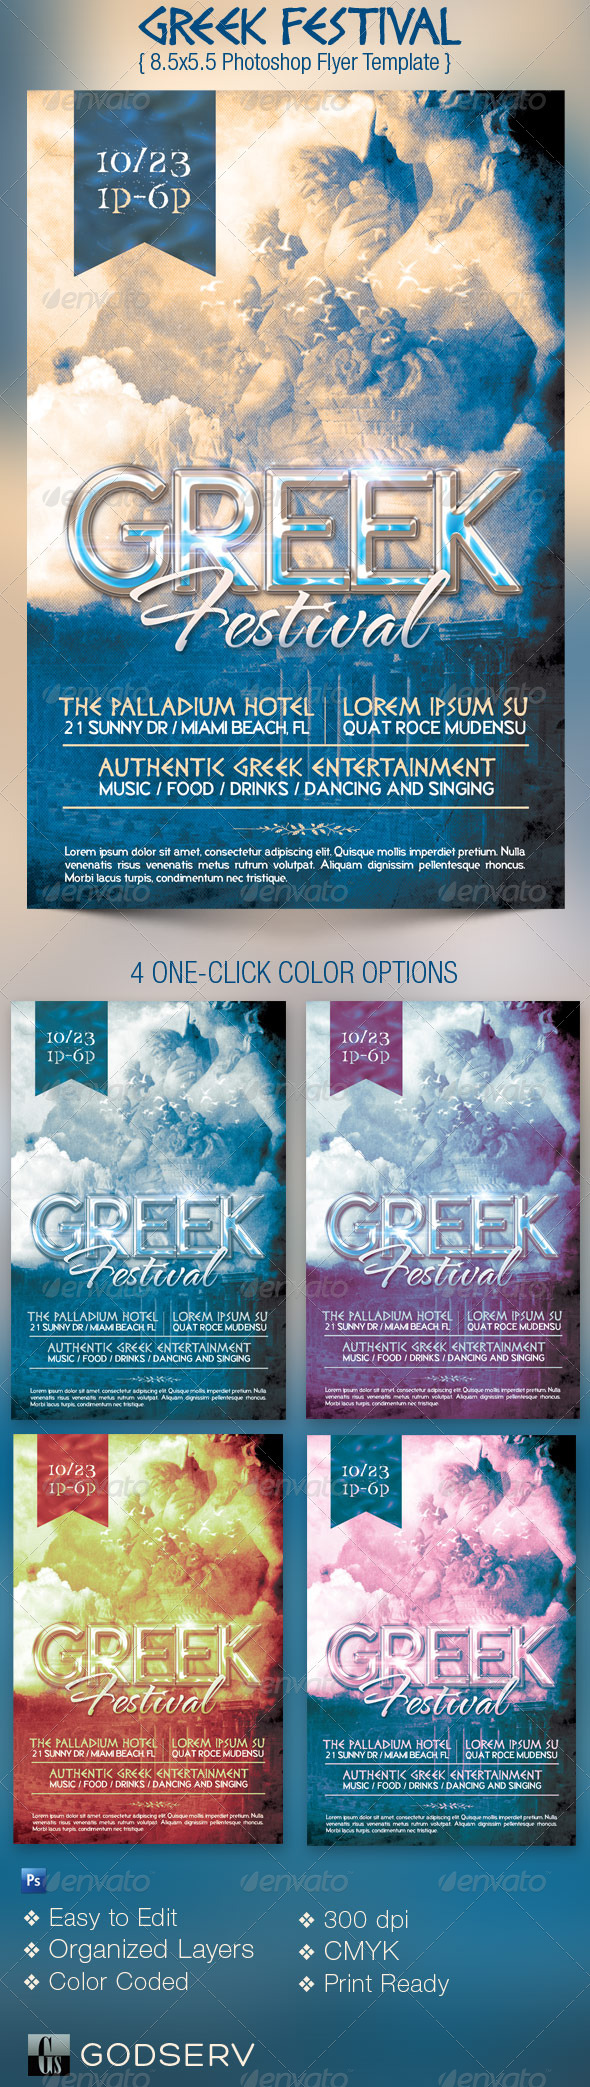 Greek Festival Flyer Template - Events Flyers